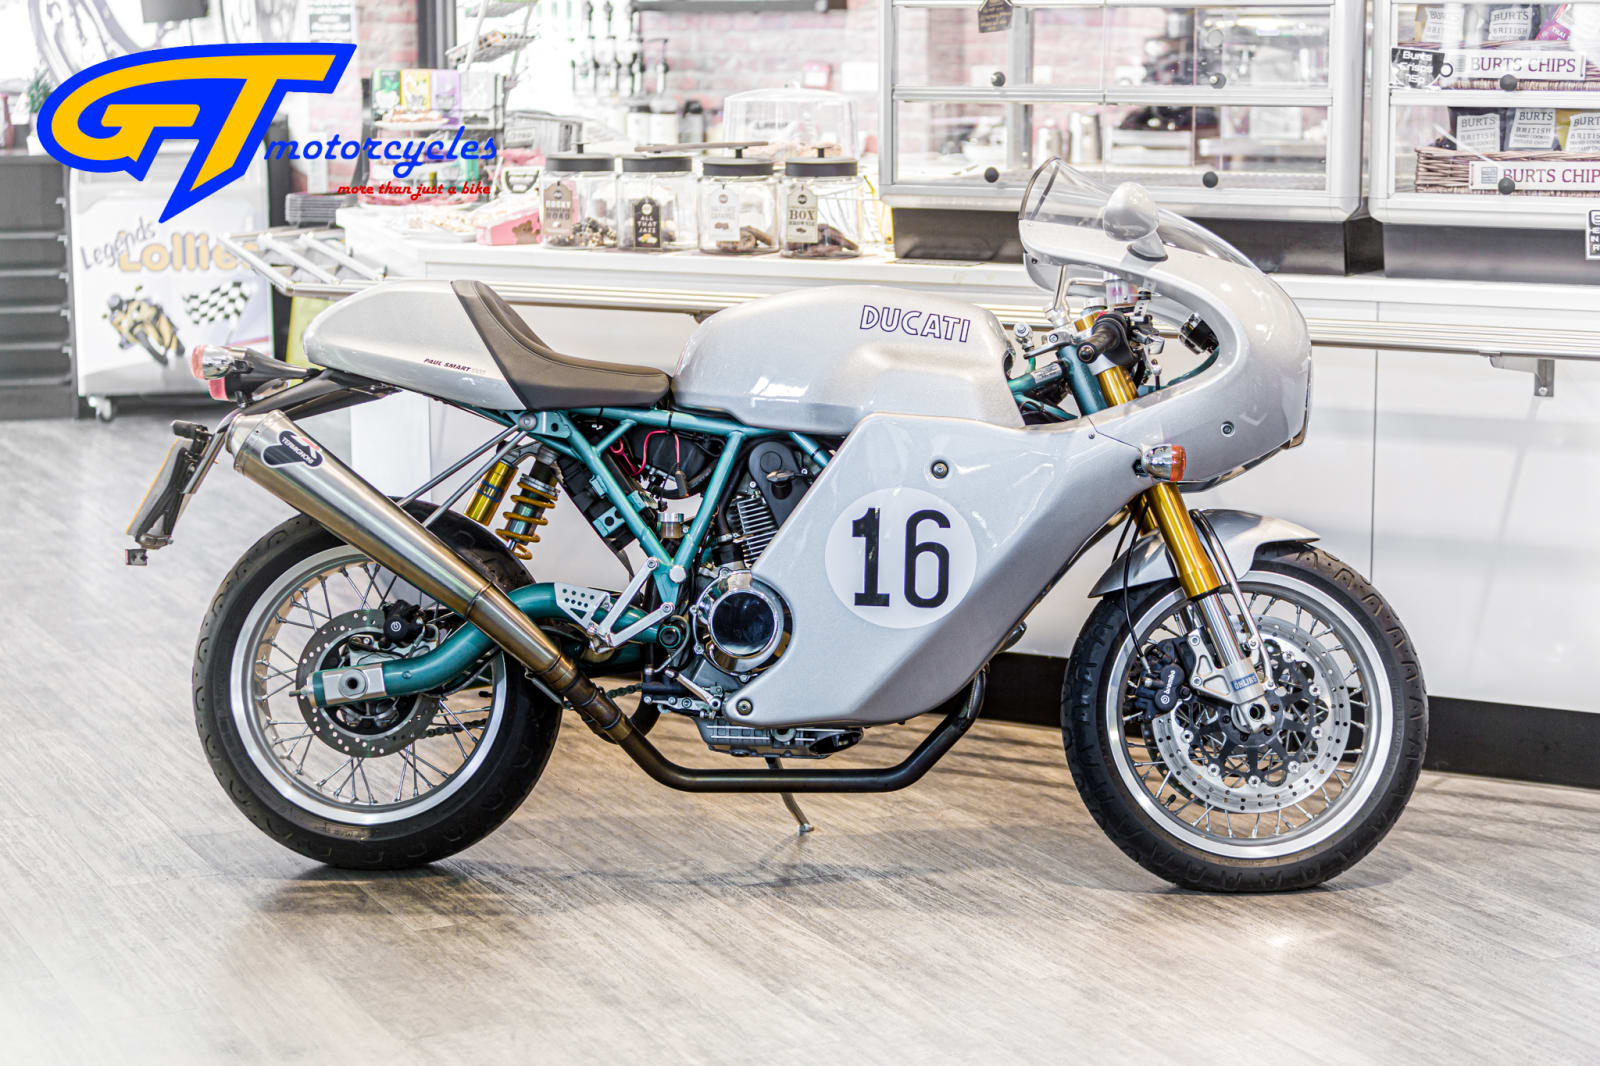 picture of a Ducati Cafe Racer